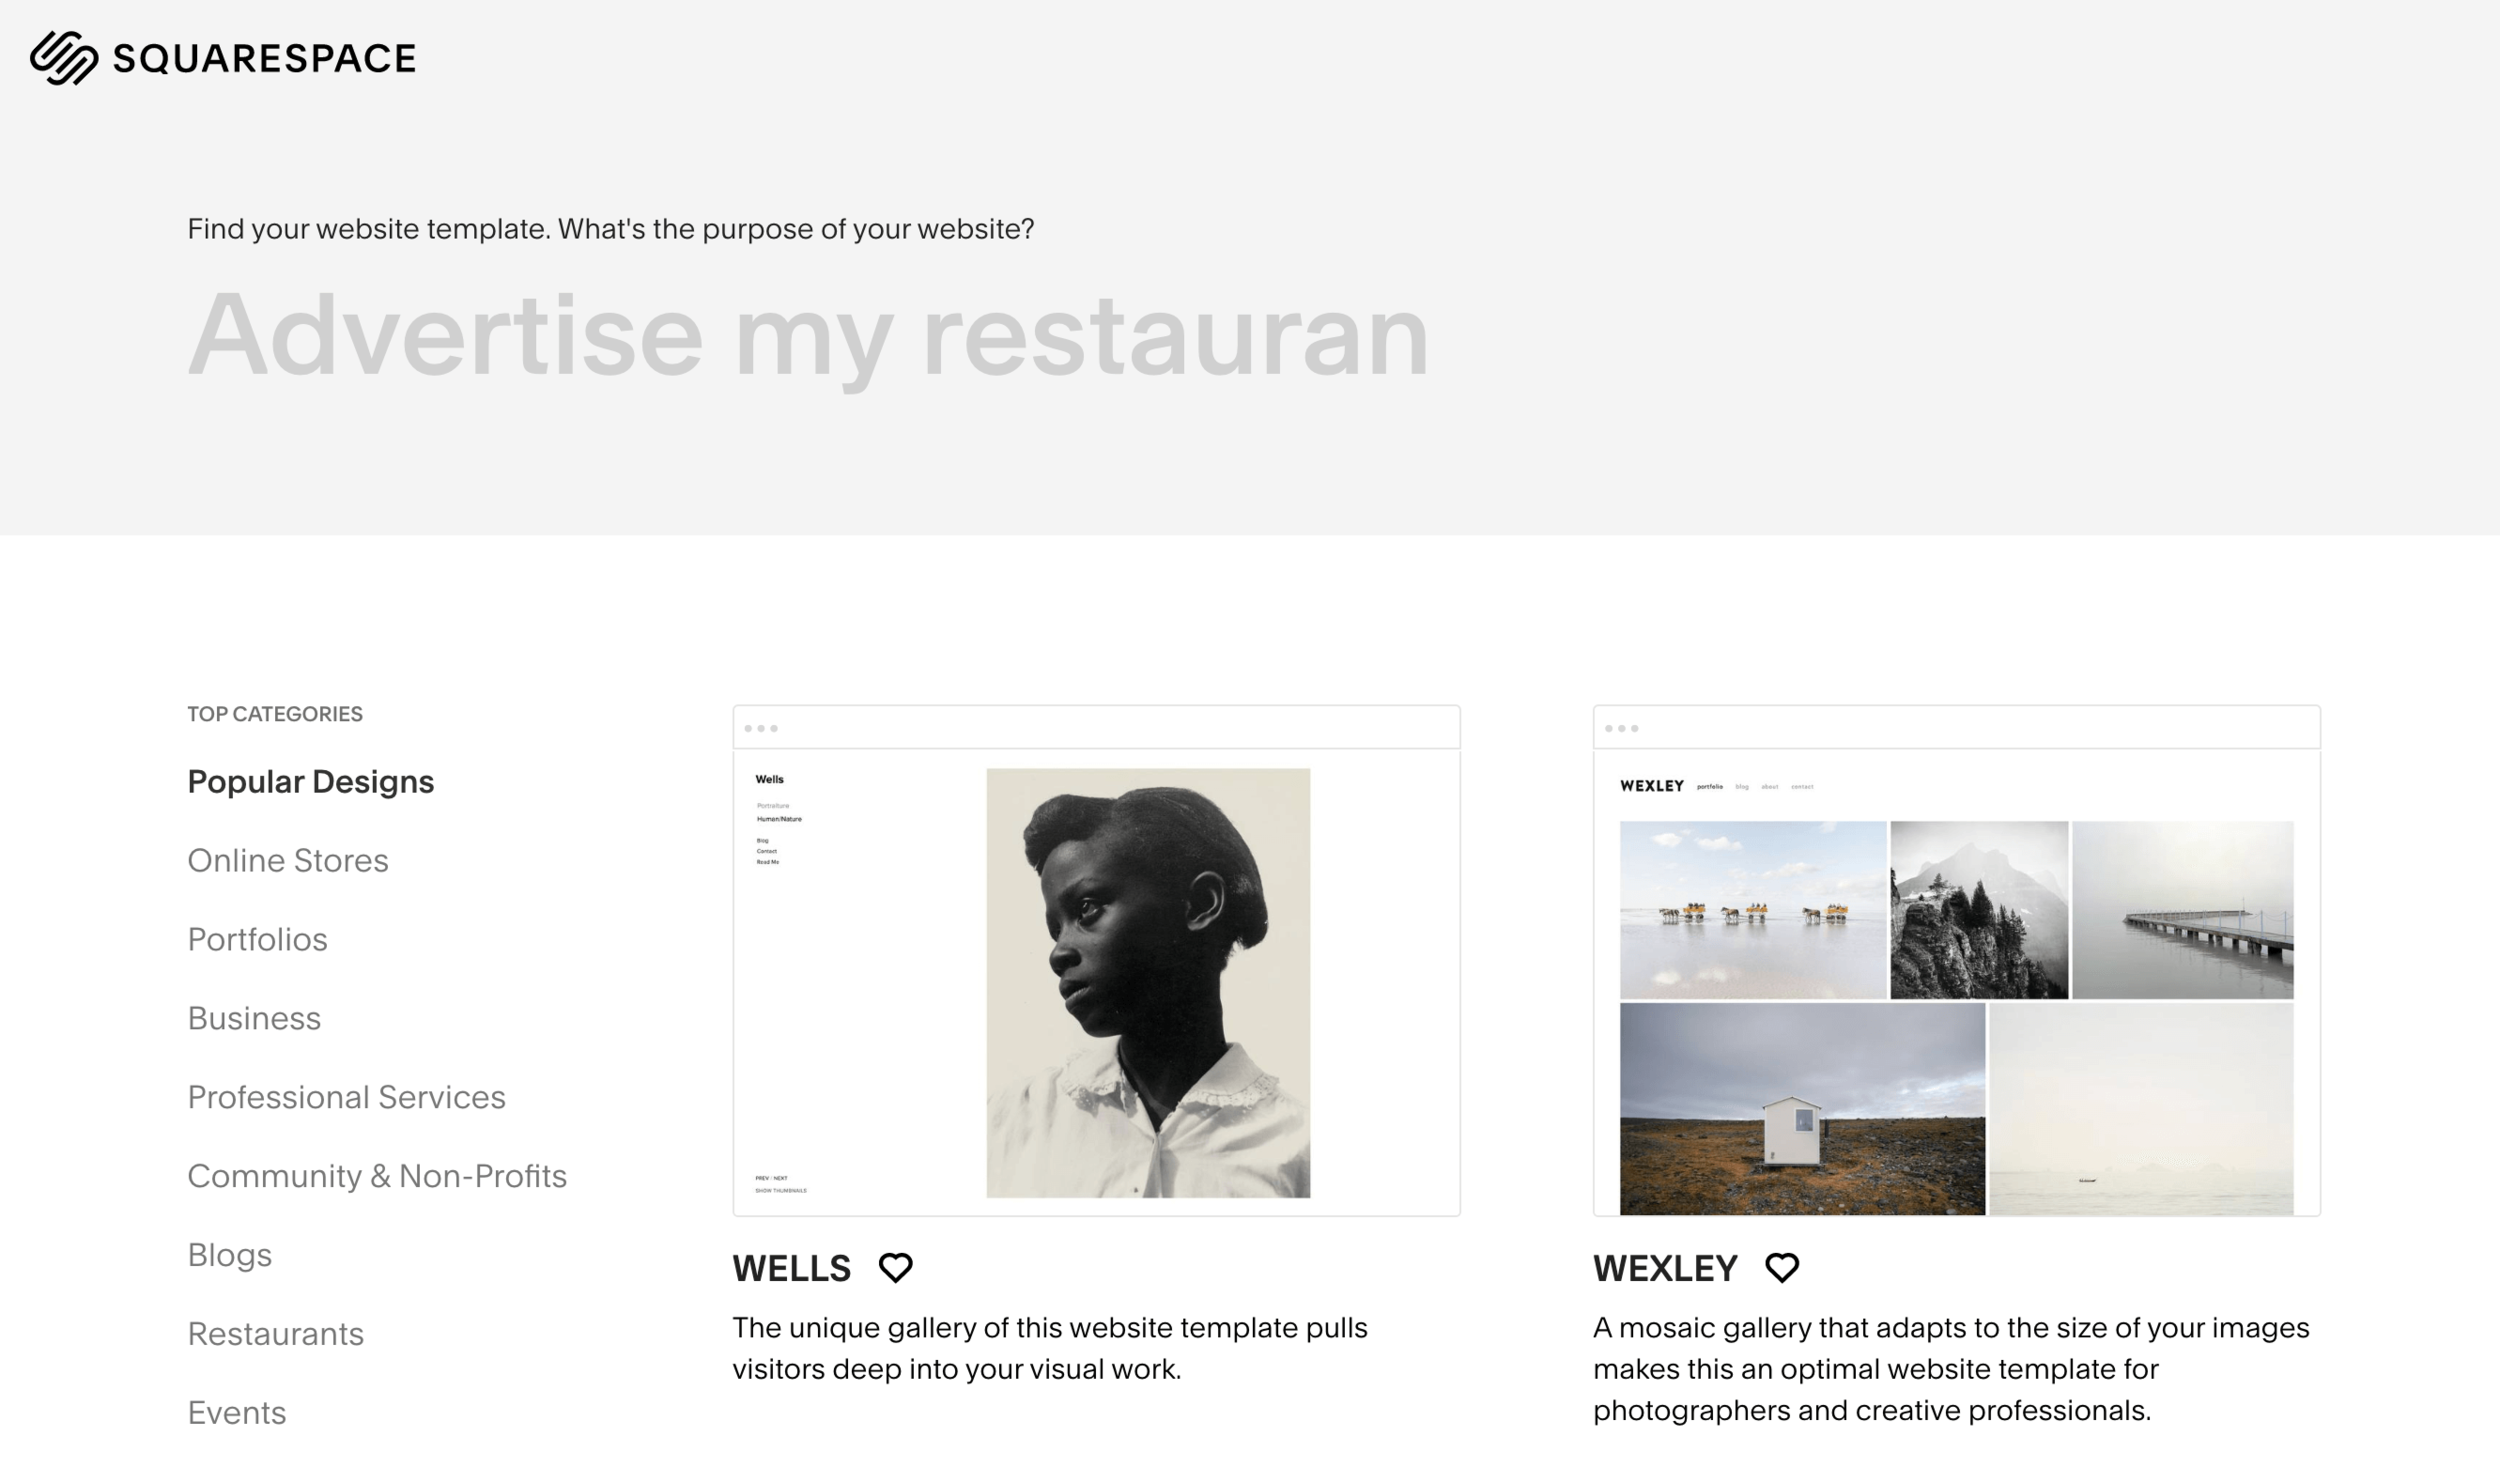 You can browse all of Squarespace's templates in the template store - all templates are free